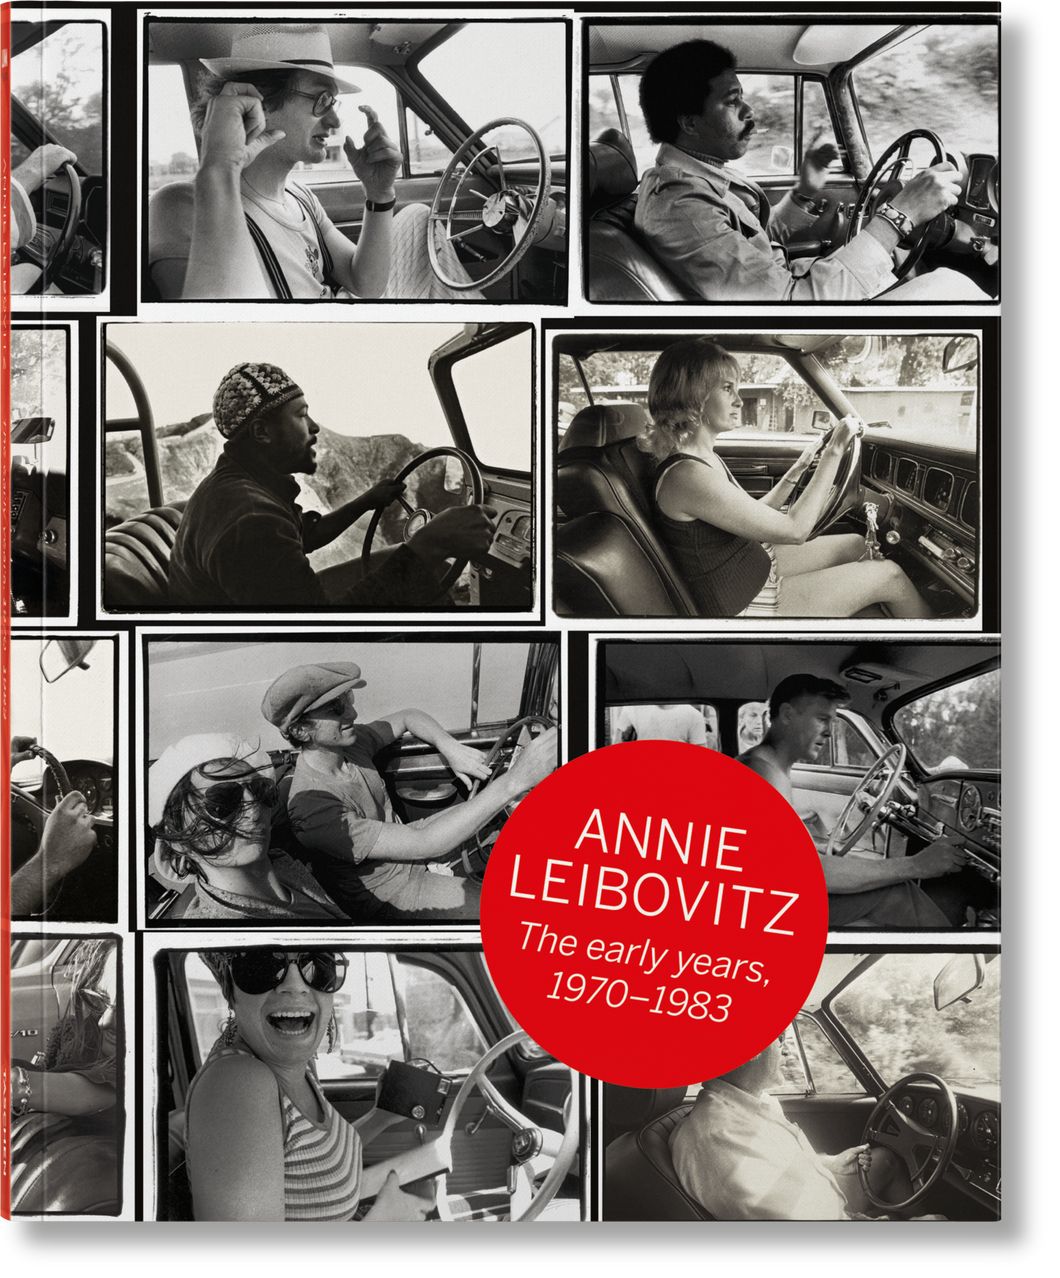 Luc Sante, J. S. Wenner / Annie Leibovitz: The Early Years, 1970-1983